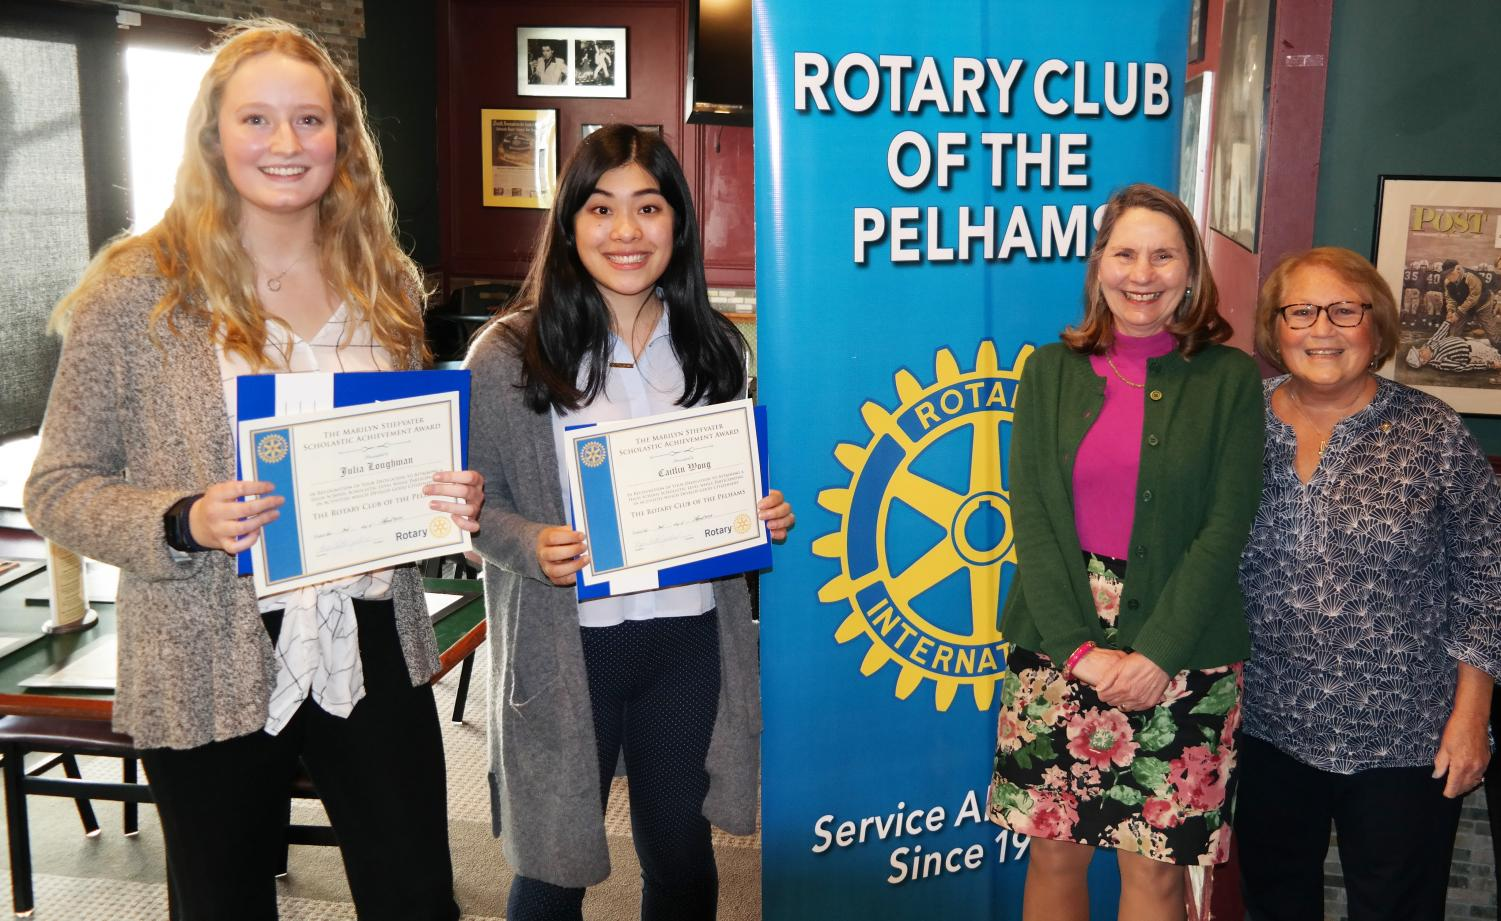 From left, Scholars of the Month Julia Loughman and Caitlin Wong, PMHS Principal Jeannine Clark and Rotary President Lyn Roth-Jacobs.